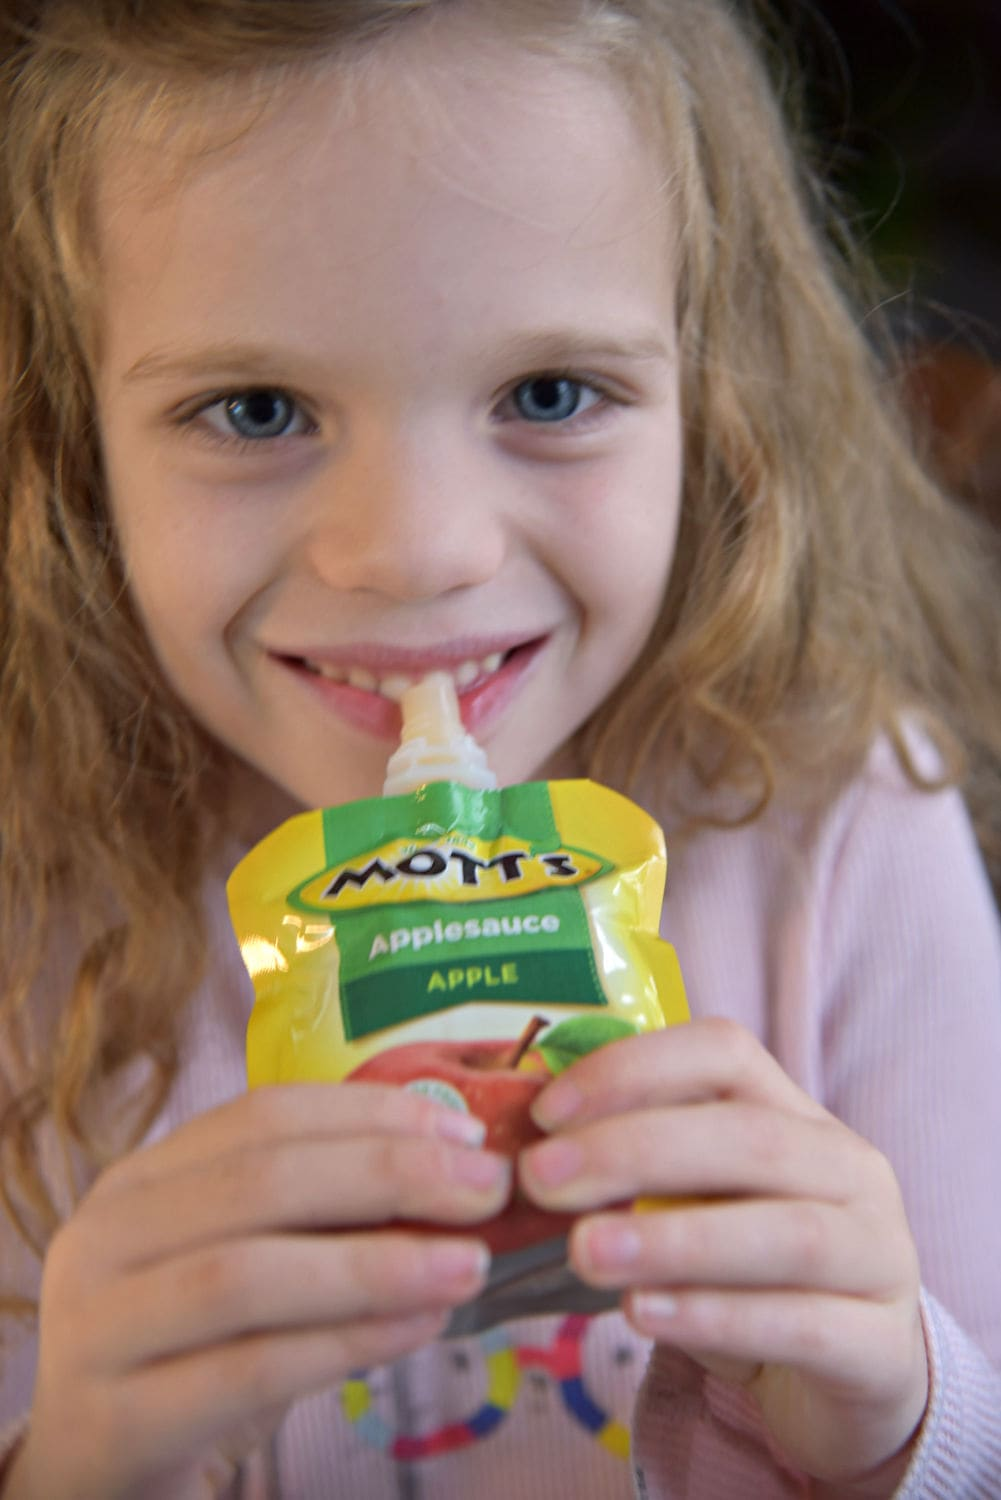 Enjoying Motts